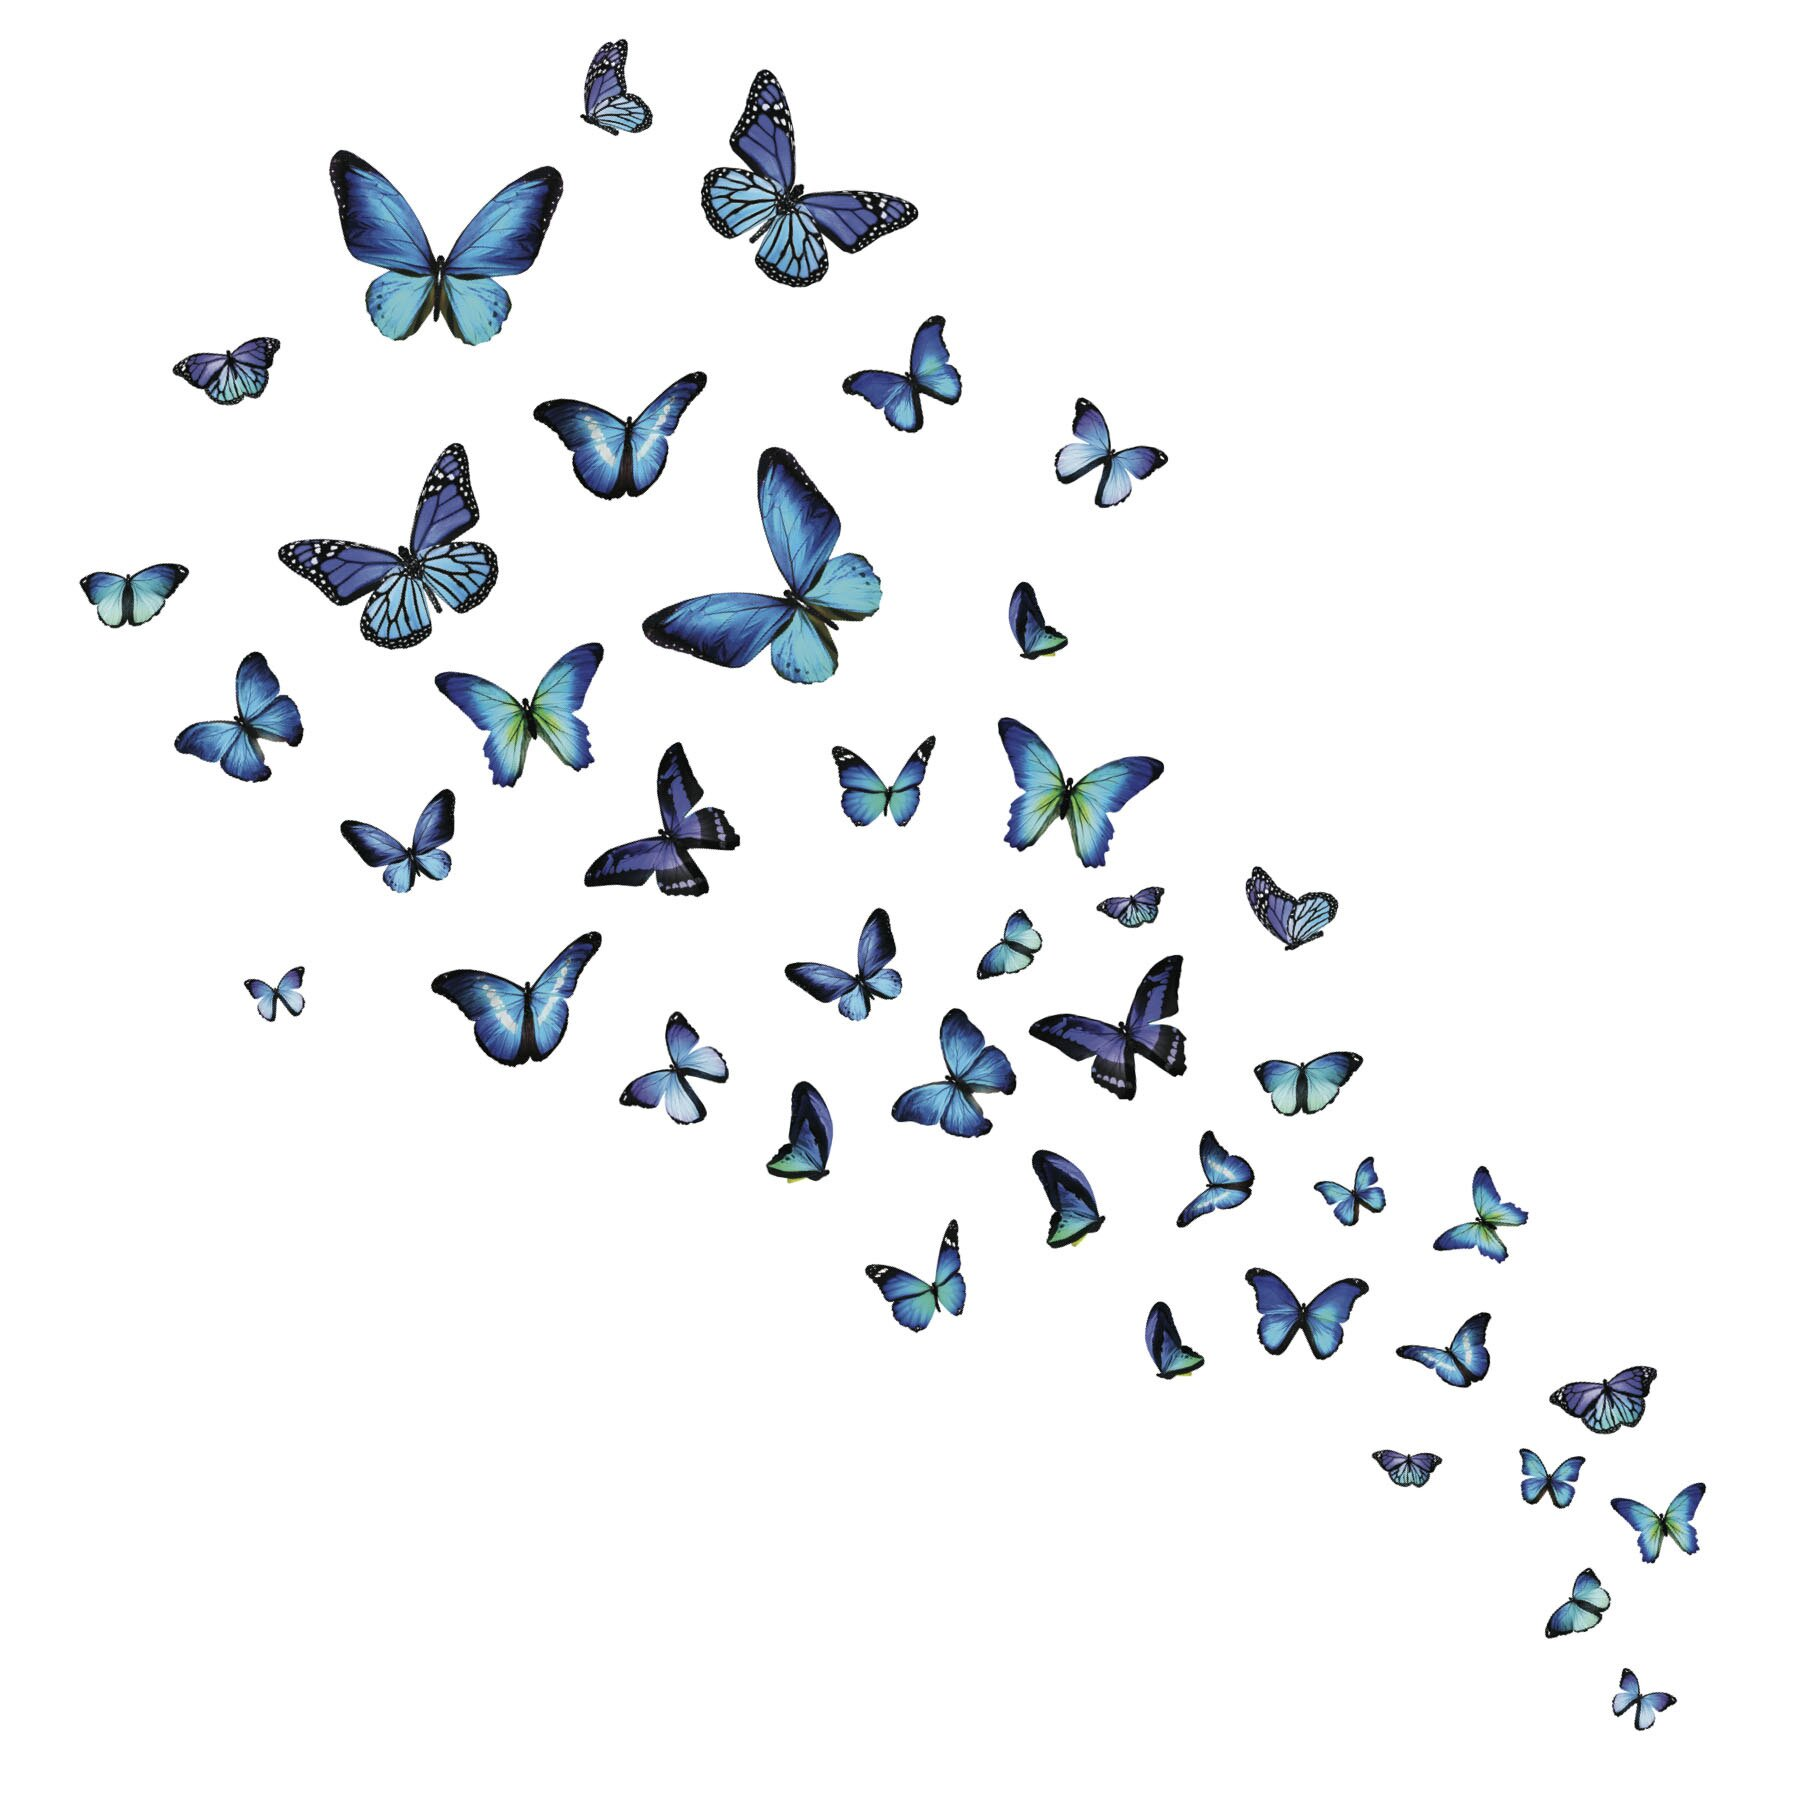 wallpops mariposa butterfly wall sticker wayfair co uk wallstickers folies butterfly flower wall stickers